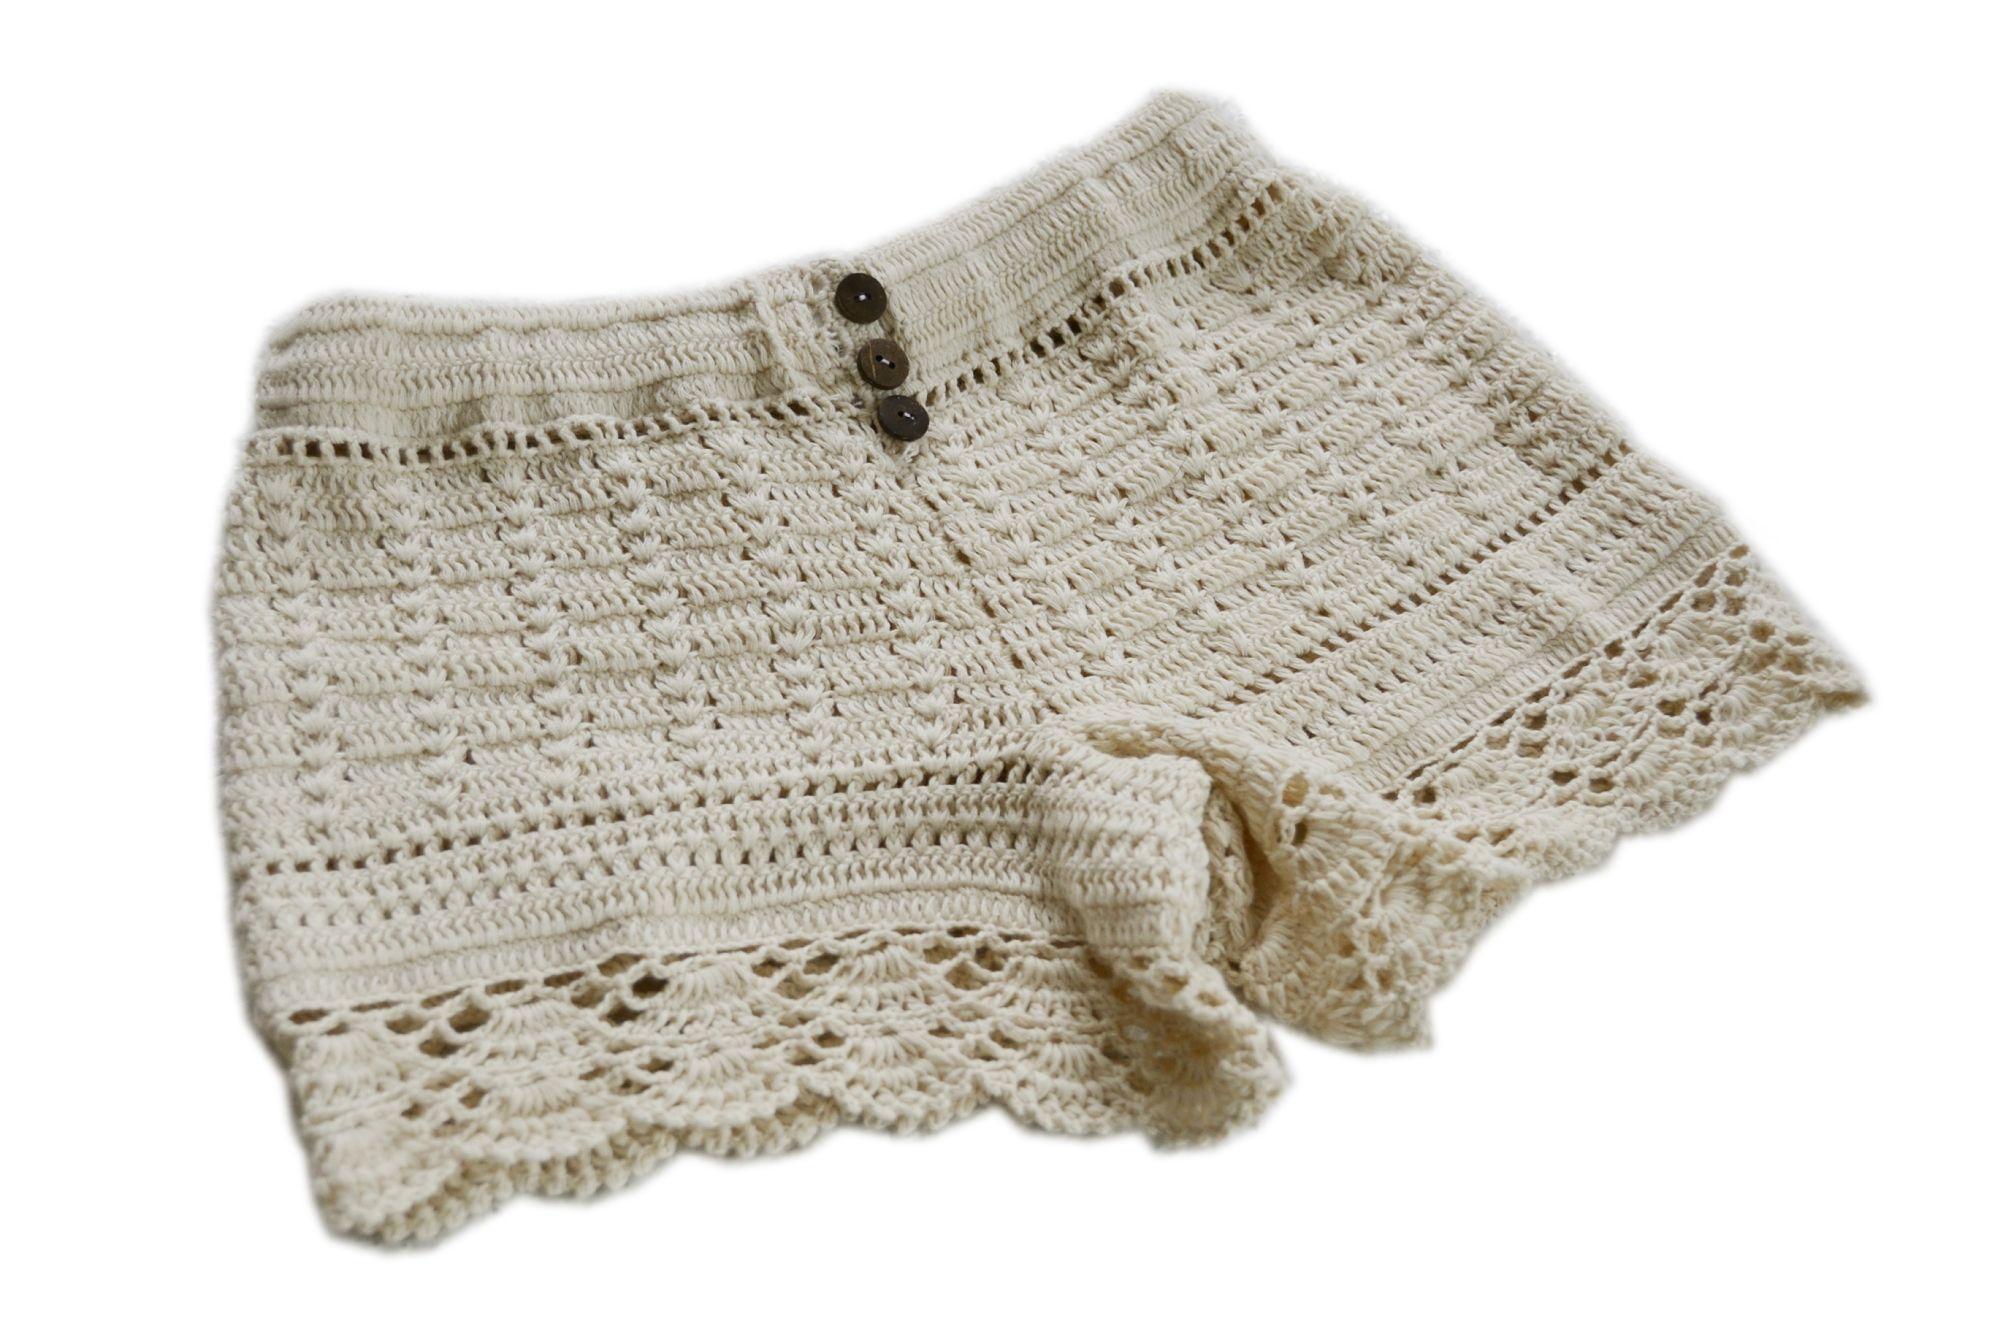 Crochet shorts patterns free crochet all about crocheting crochet shorts patterns free crochet all about crocheting free patterns and instructions bankloansurffo Choice Image